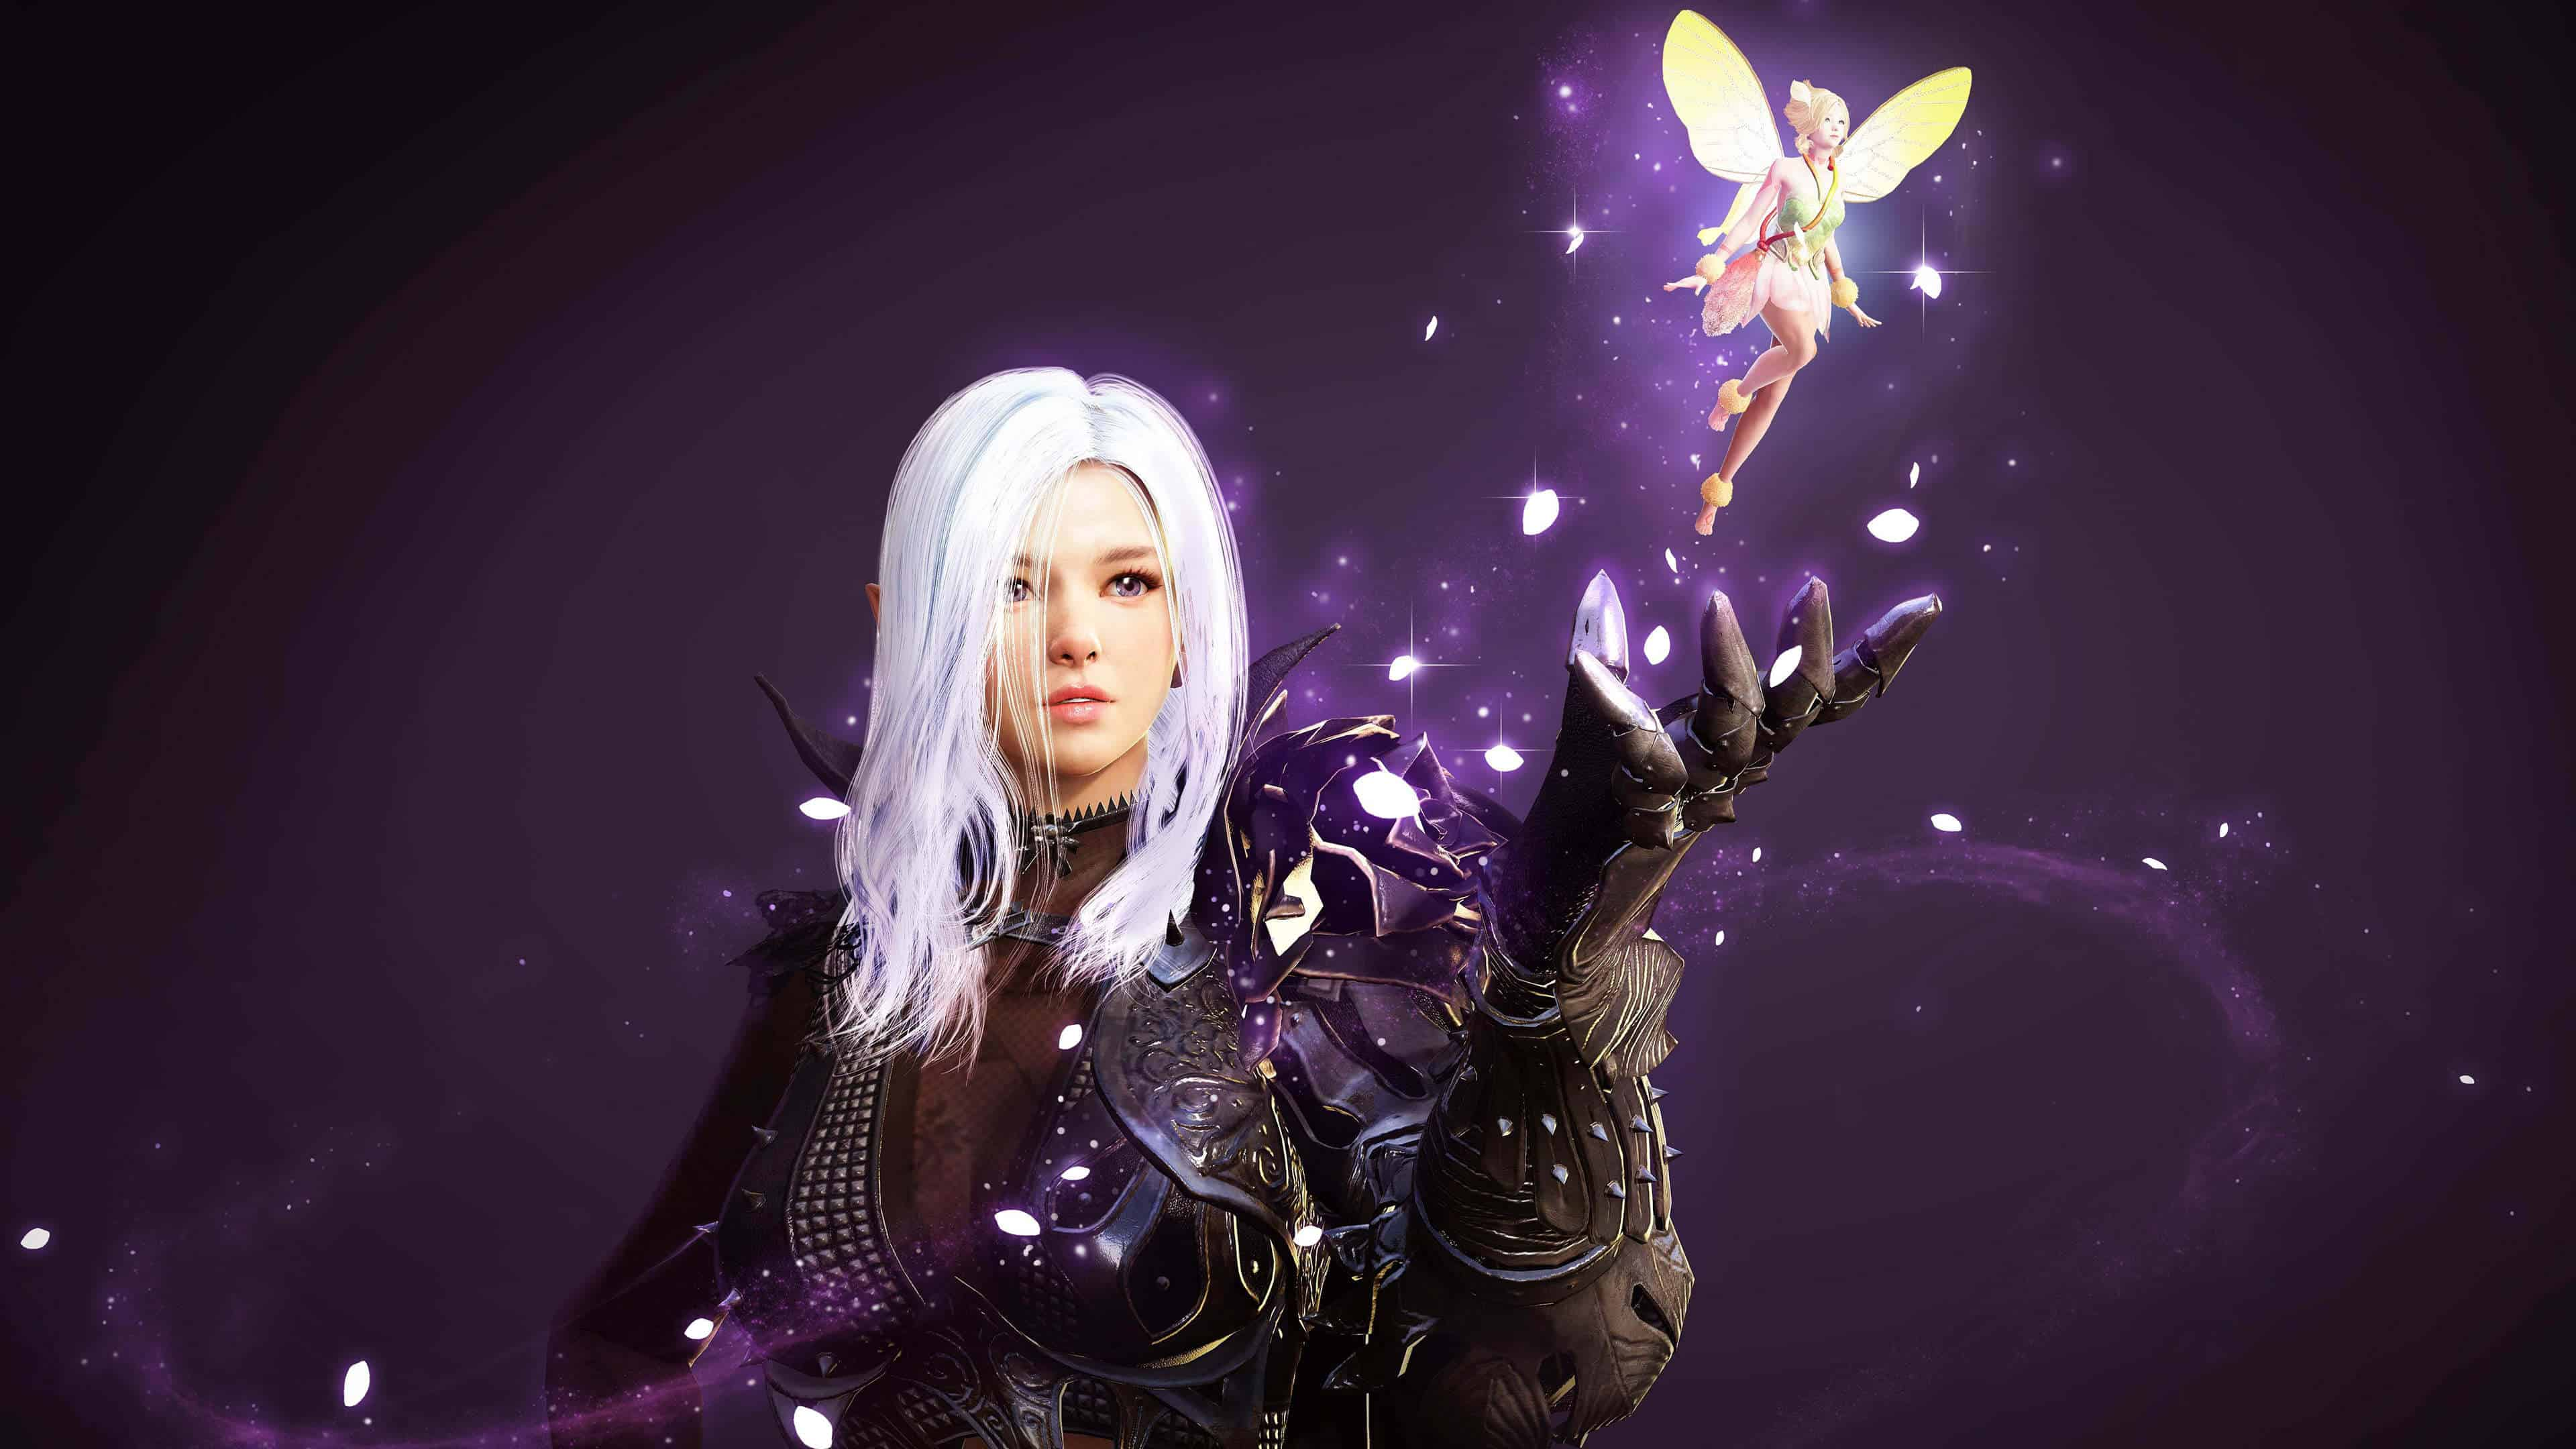 Wallpaper Black Design Black Desert Online Fairy Laila Uhd 4k Wallpaper Pixelz